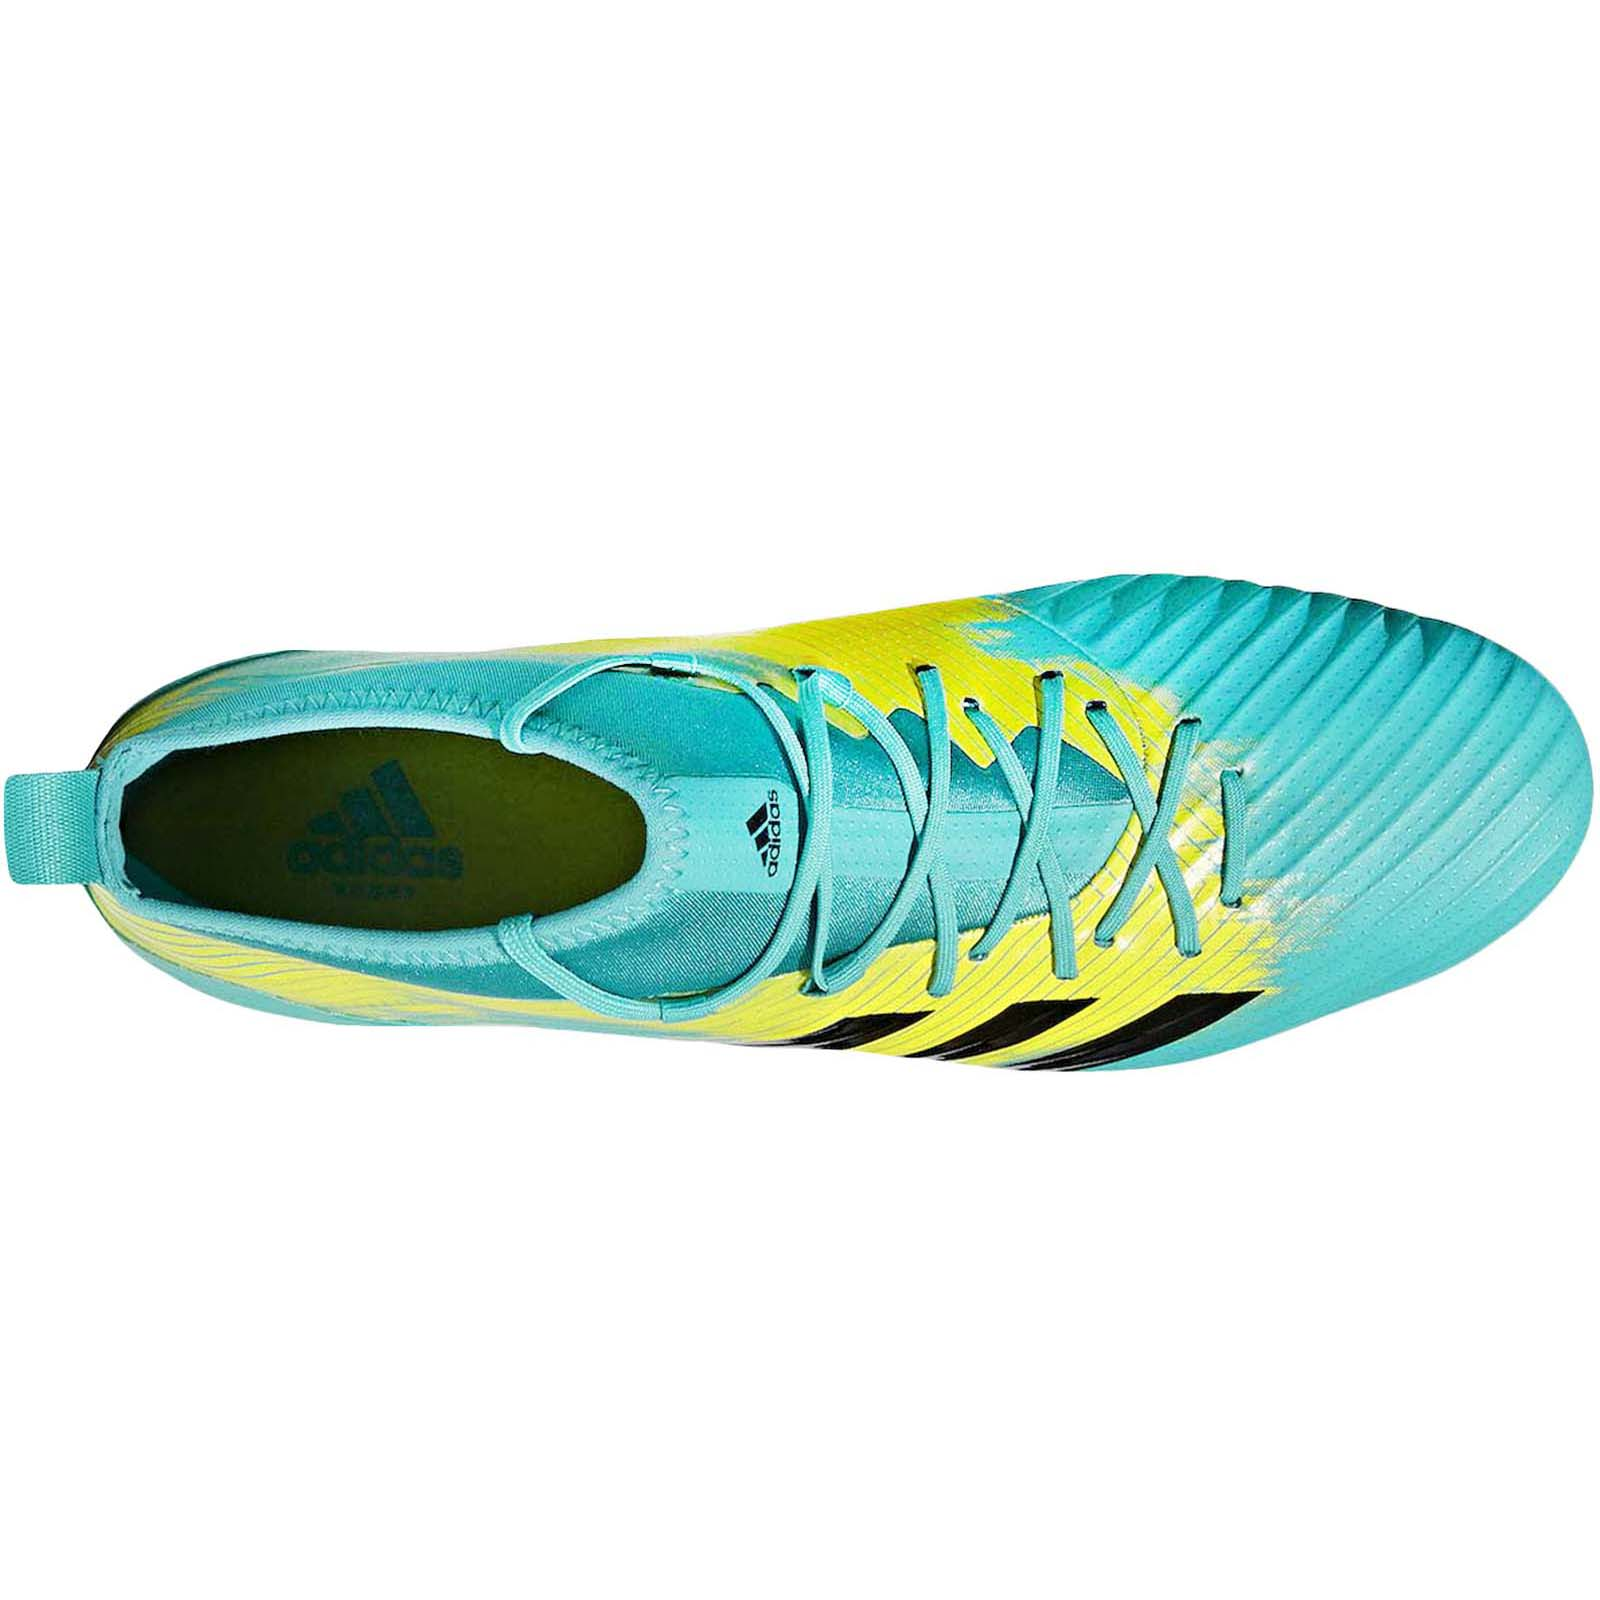 adidas-Performance-Mens-Predator-Flare-SG-Rugby-Shoes-Trainers-Boots thumbnail 7